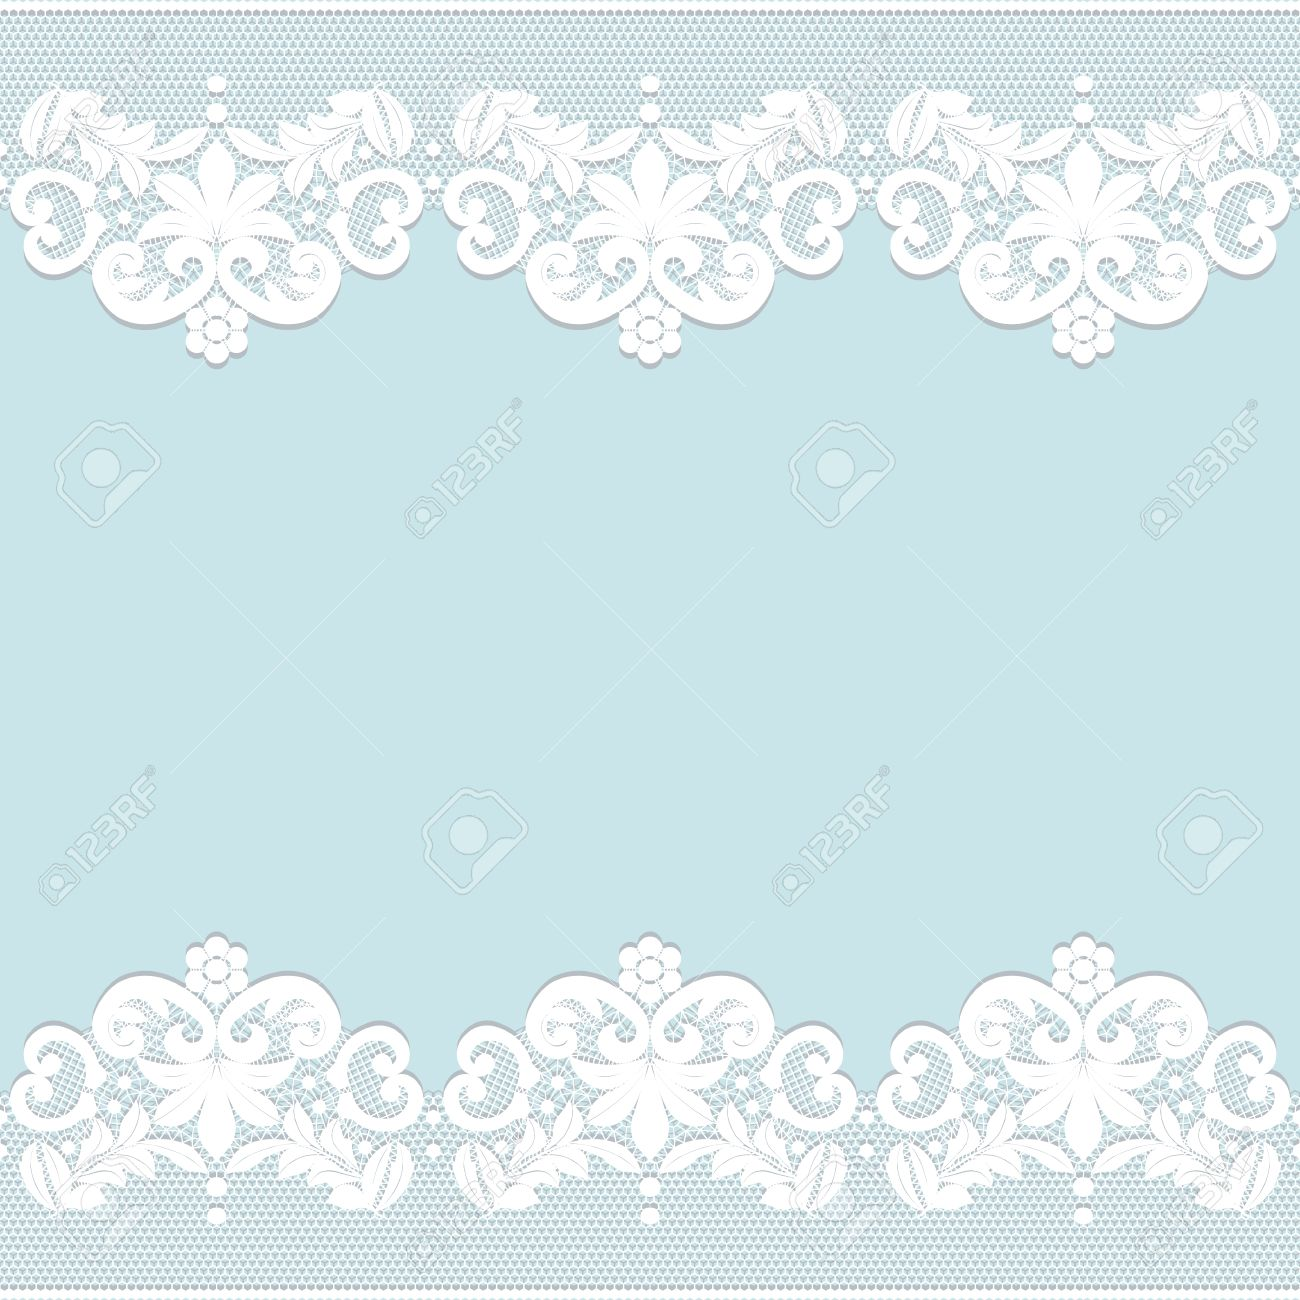 template for wedding invitation or greeting card with white